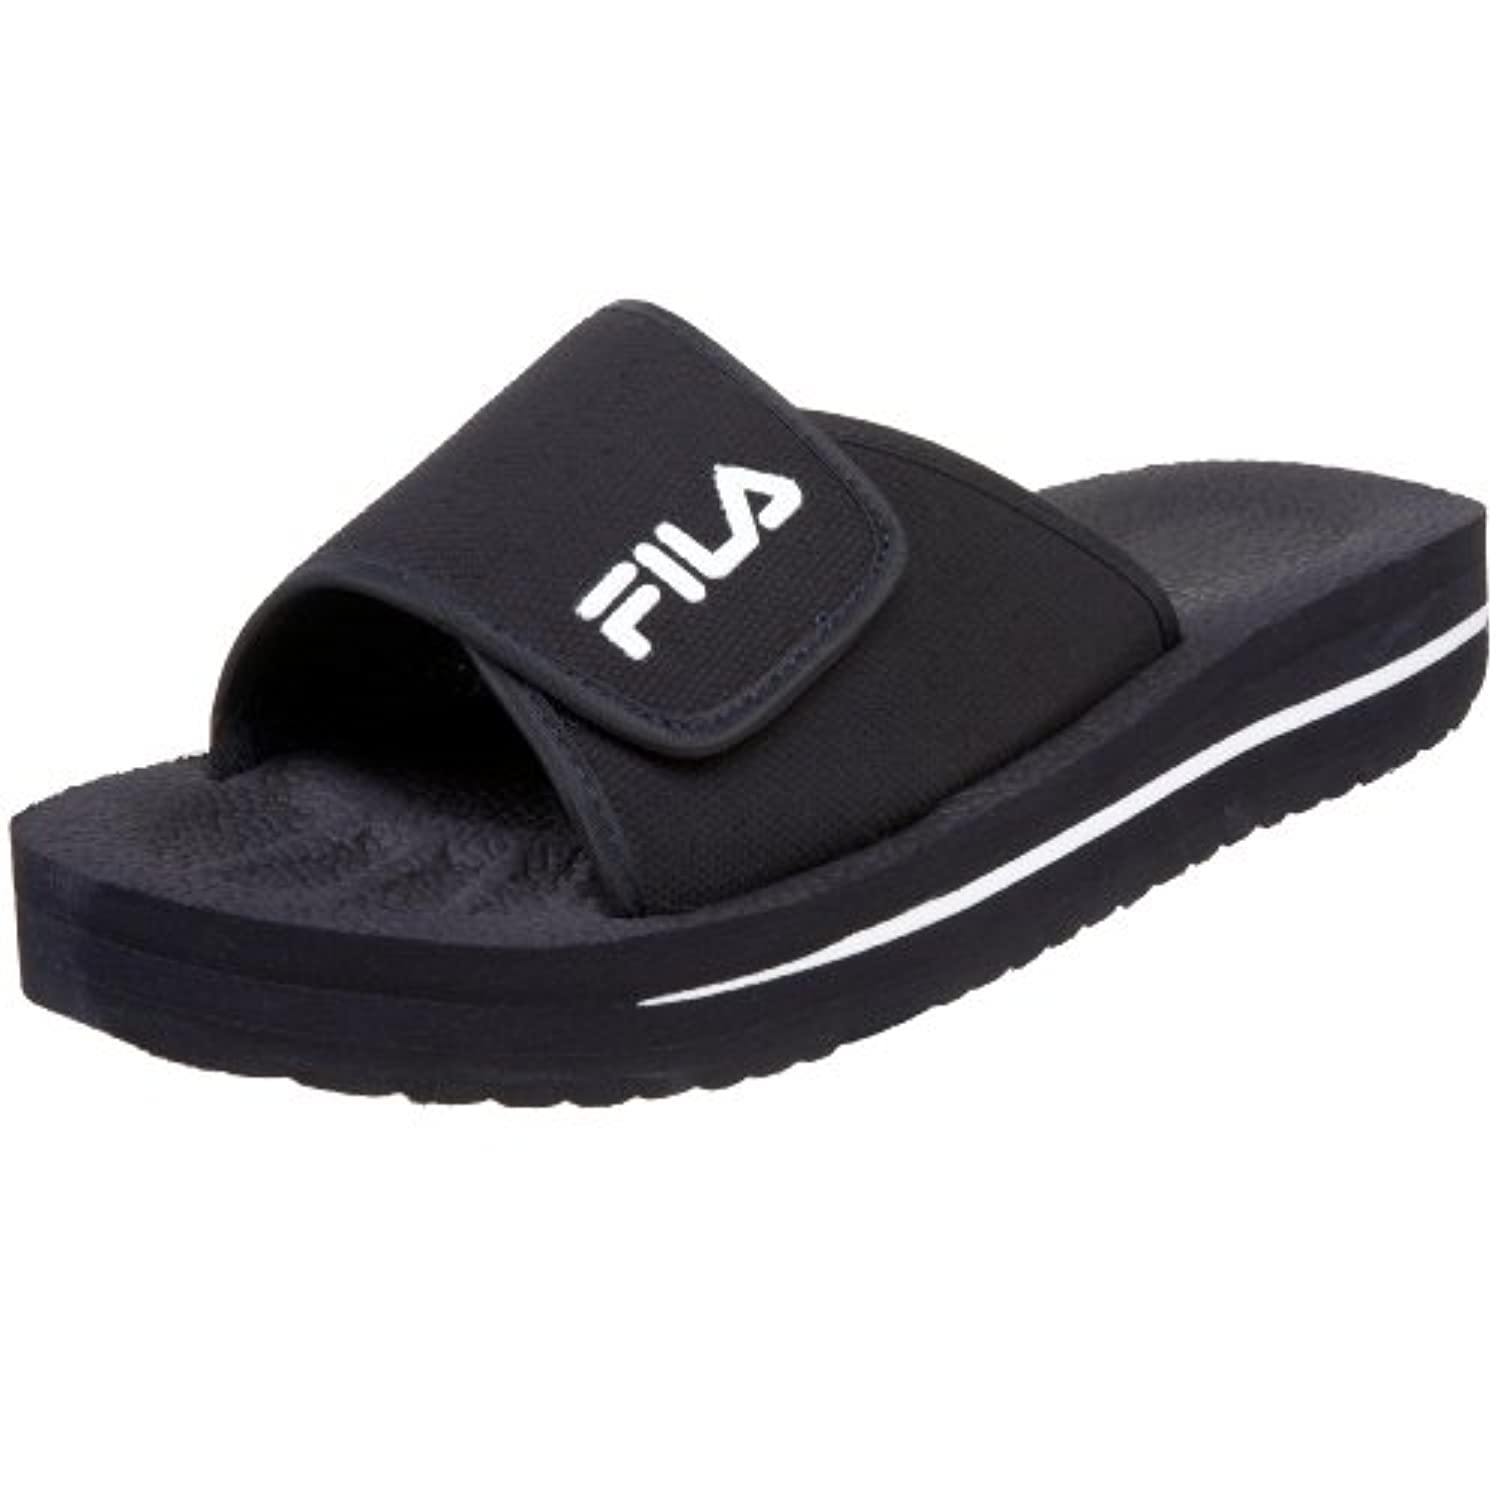 Fila Slip-On Strap Sandal Youth US 4 Blue Slides Sandal